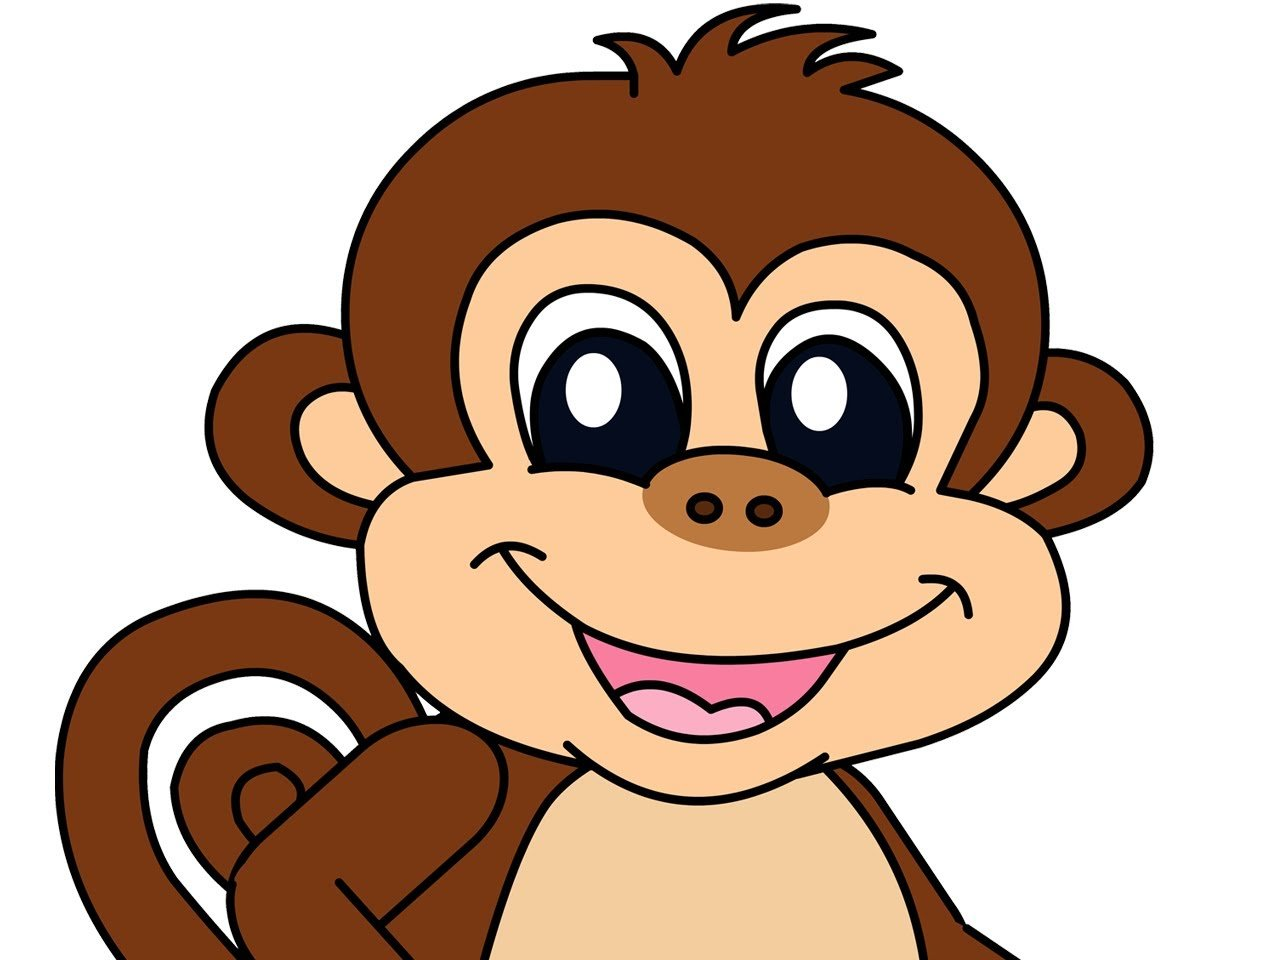 Animated monkey wallpaper wallpapersafari for Wallpaper home cartoon